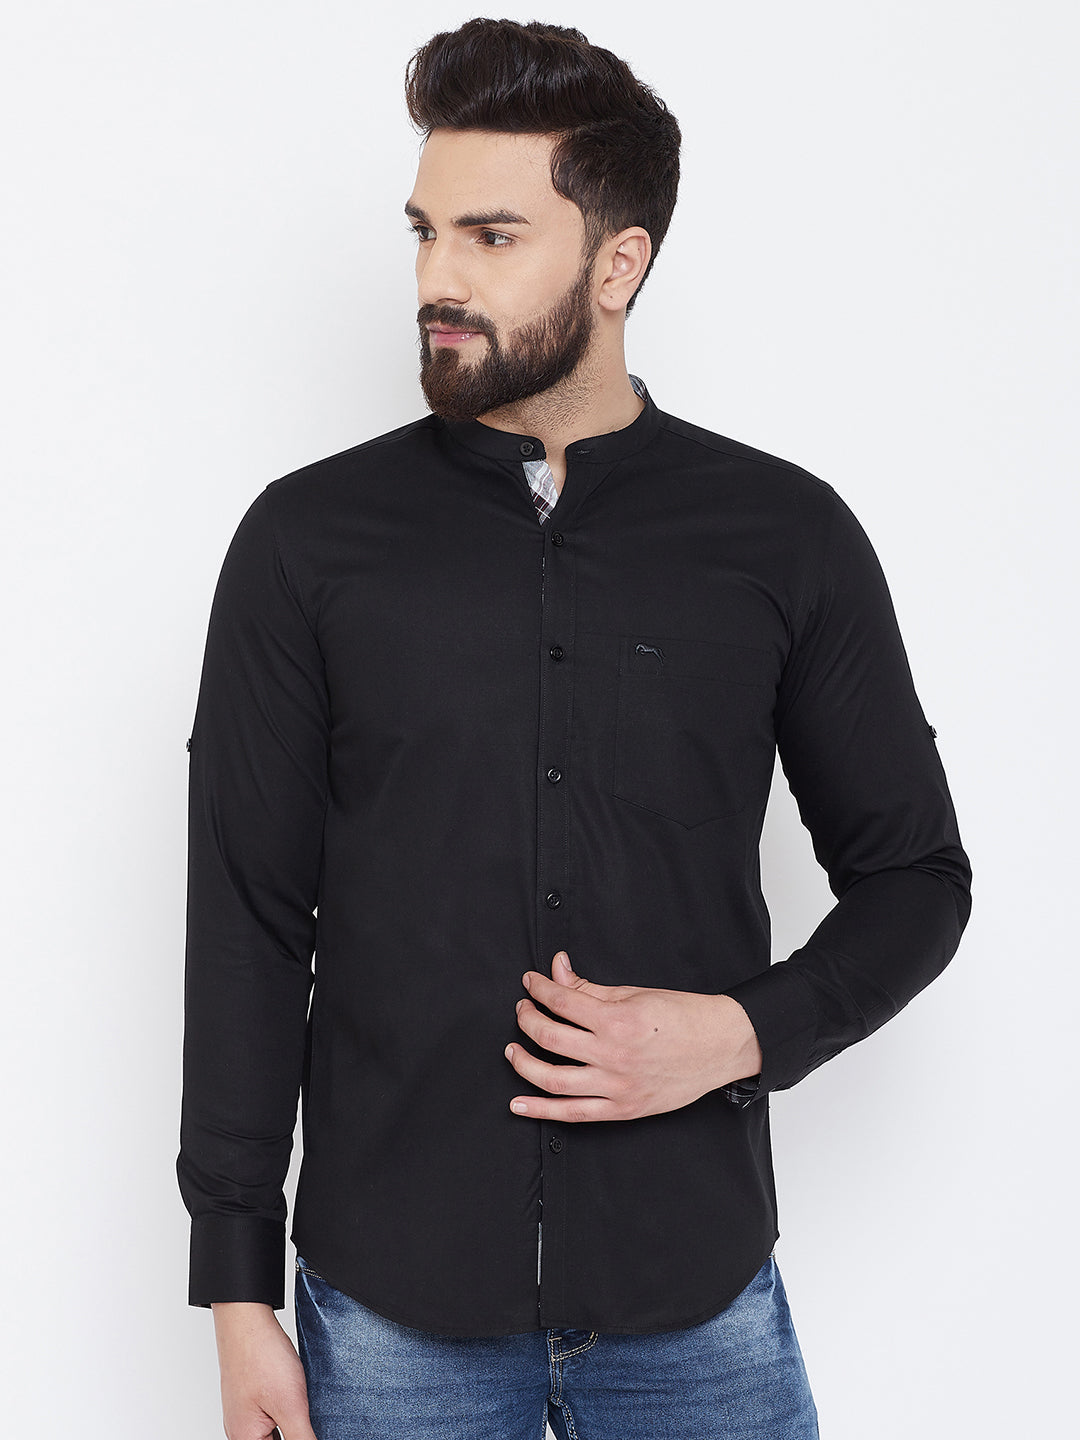 JUMP USA Men Black Solid Cotton Casual Shirts